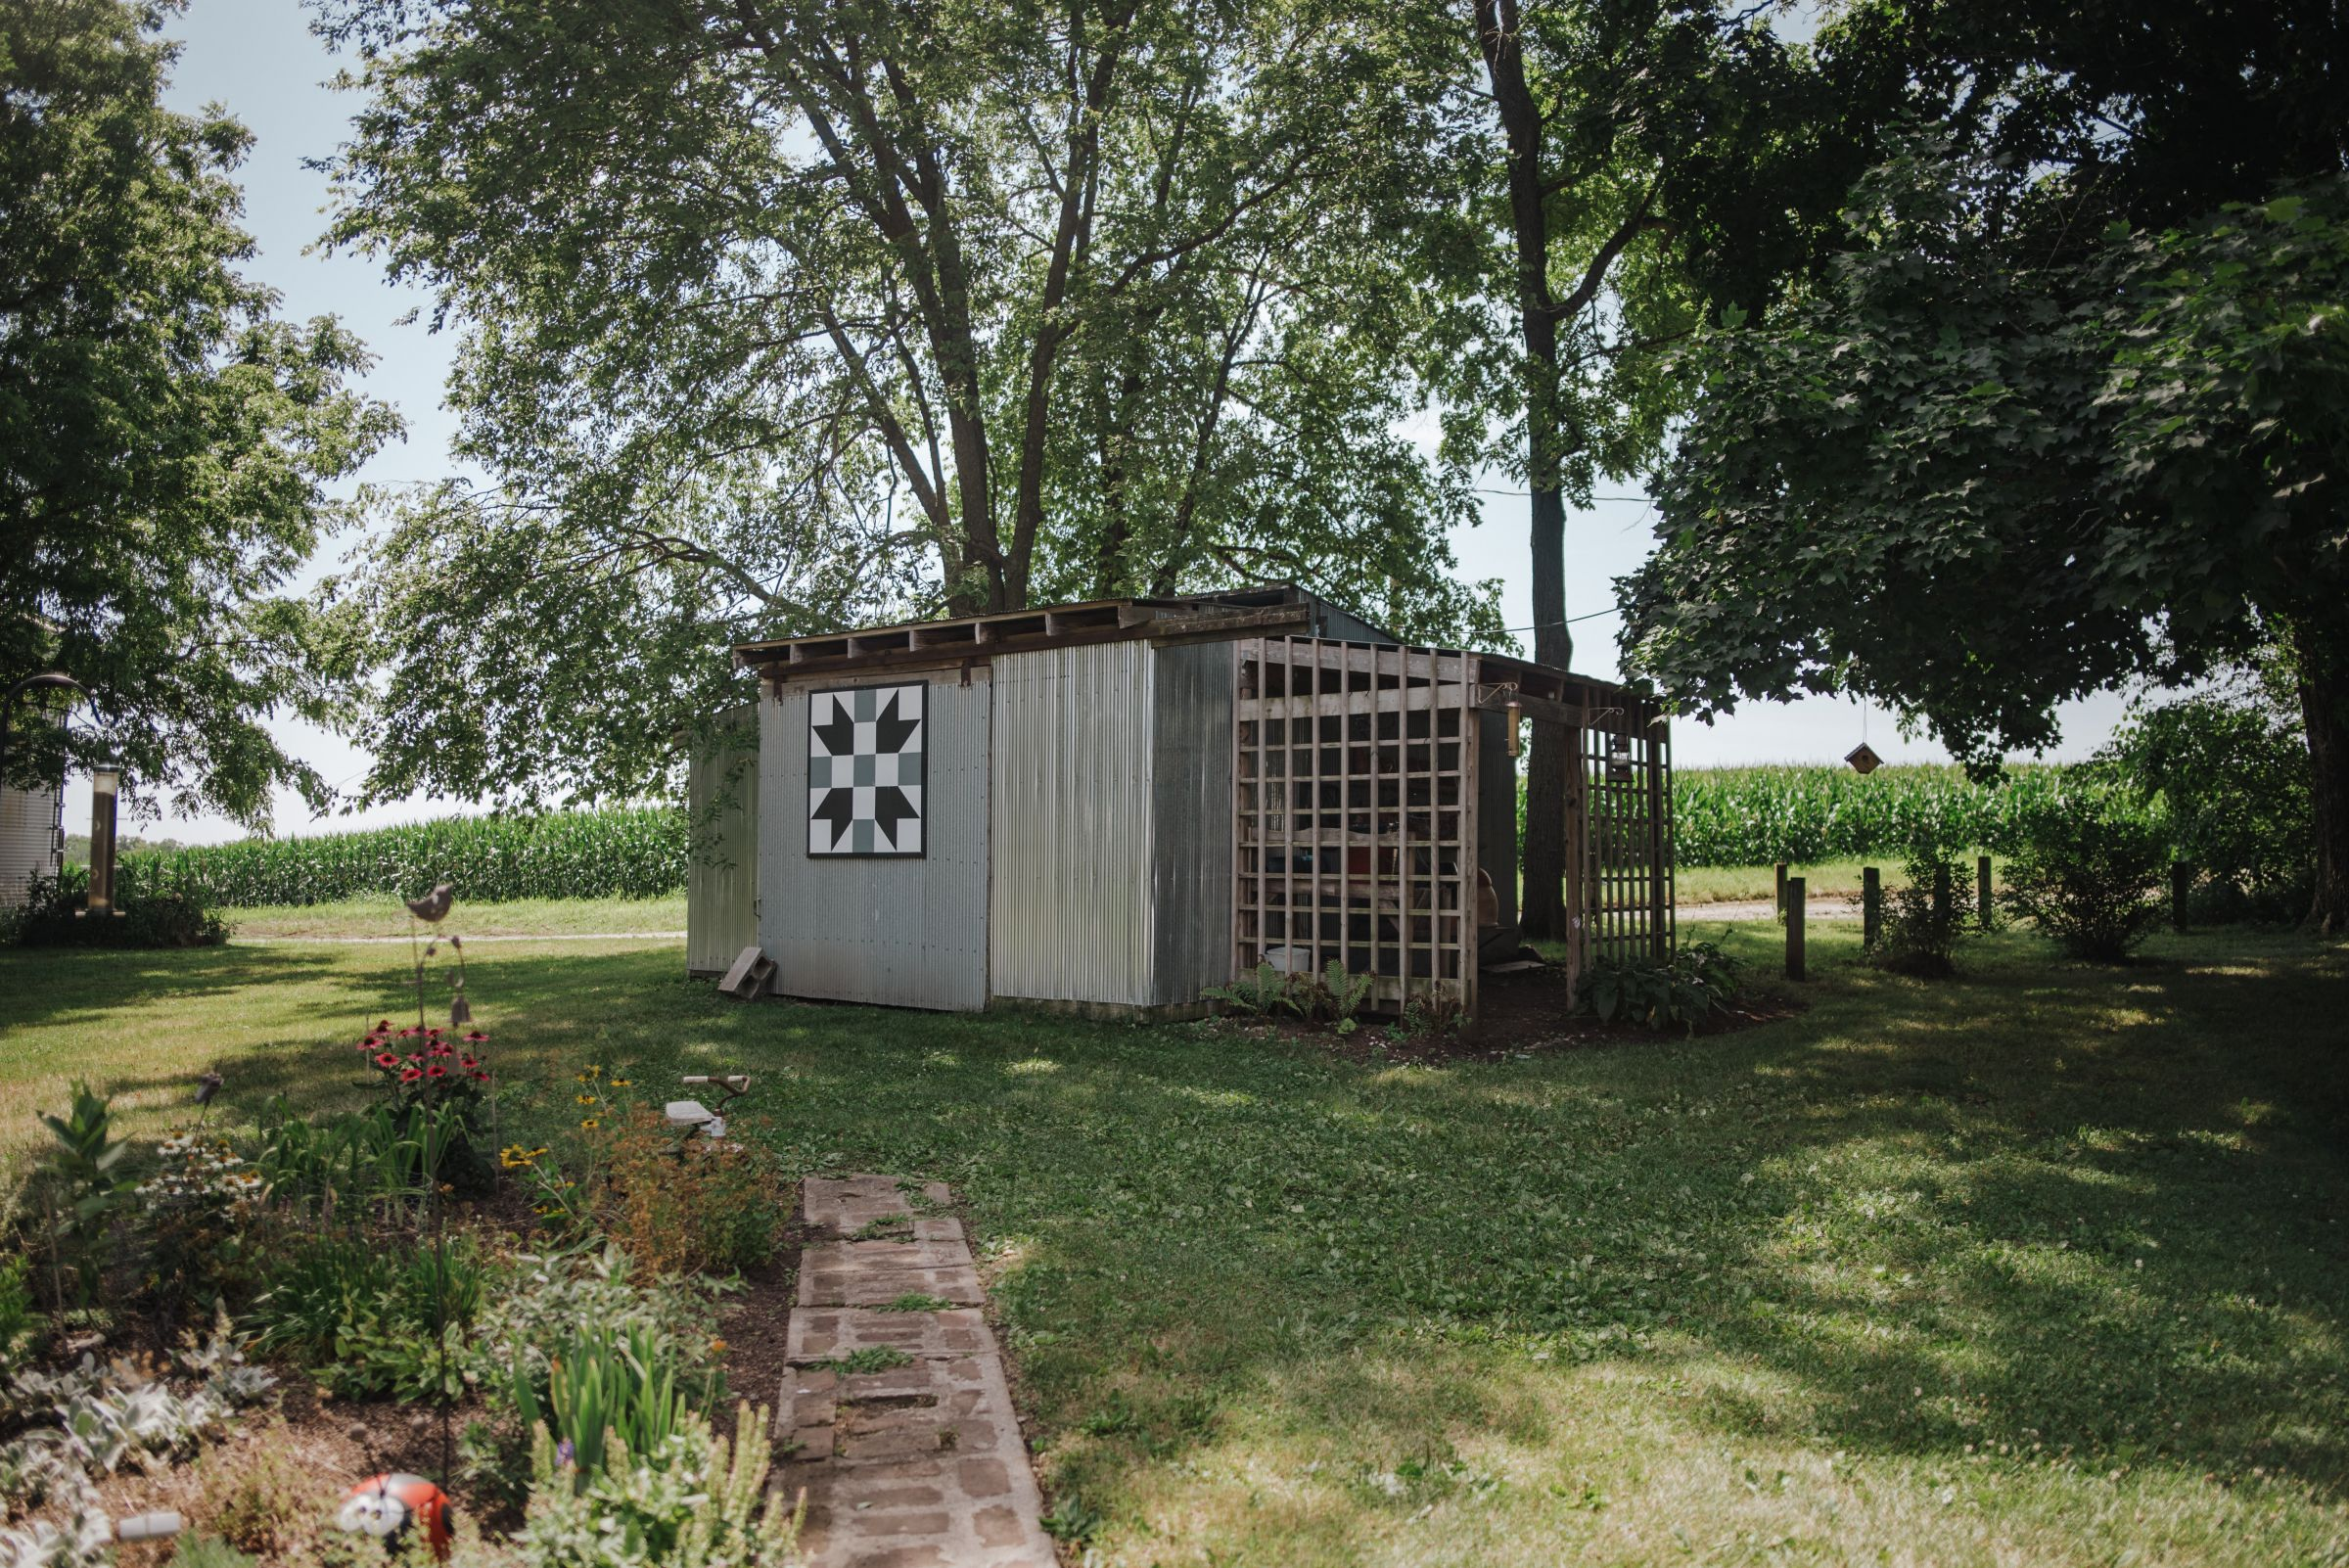 residential-warren-county-iowa-10-acres-listing-number-15078-2-2020-07-21-142144.jpg